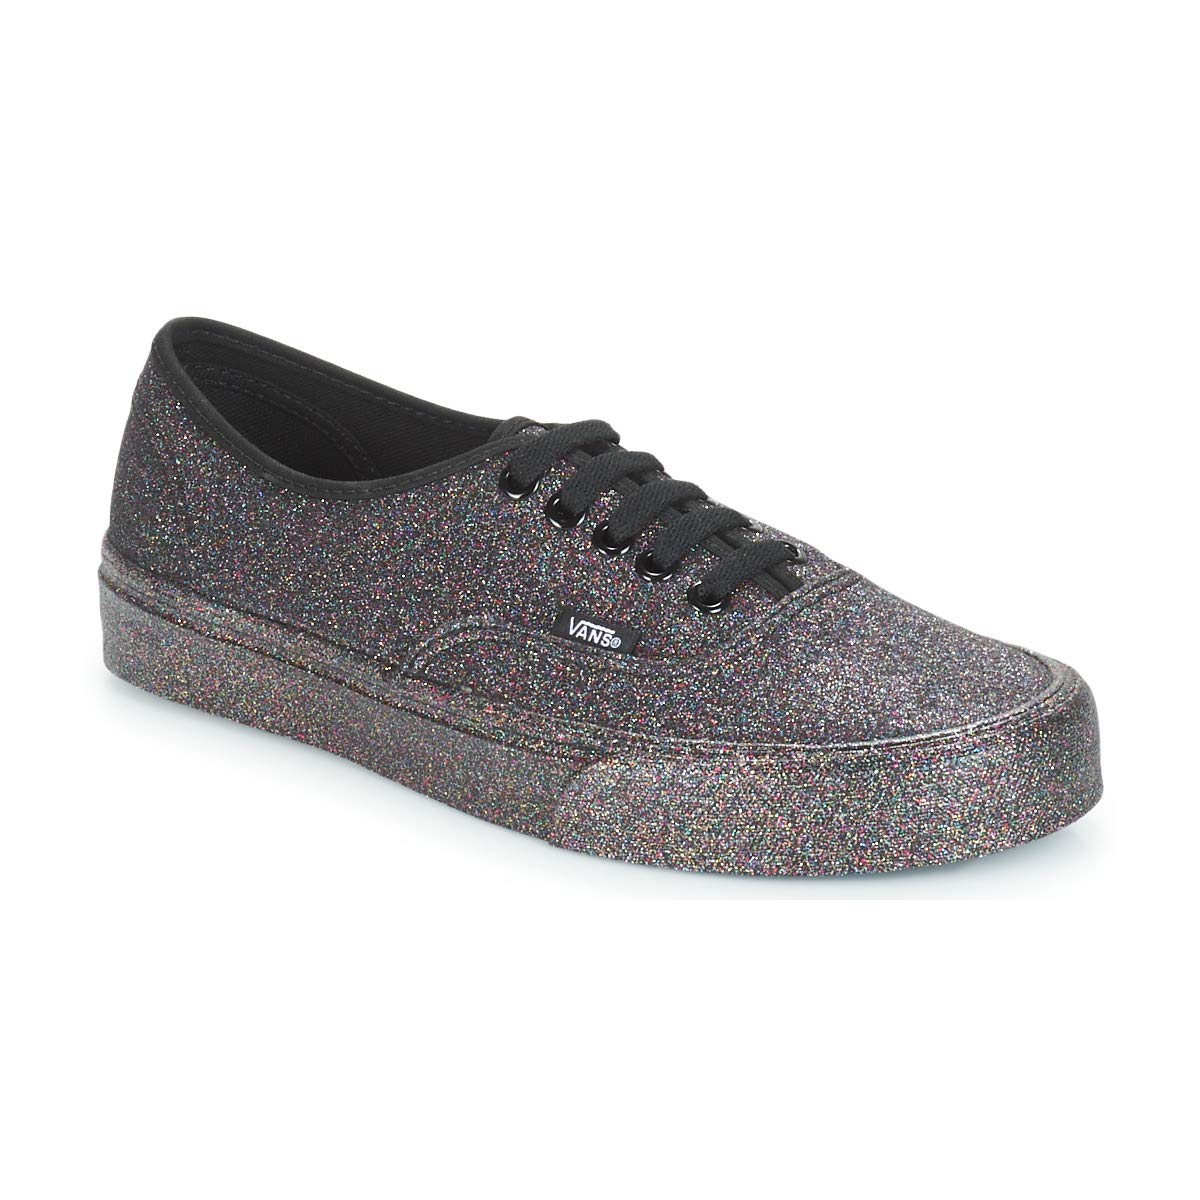 Glitter Authentic Handle på Vans  Vans Rainbow Glitter Authentic Men's Sneaker